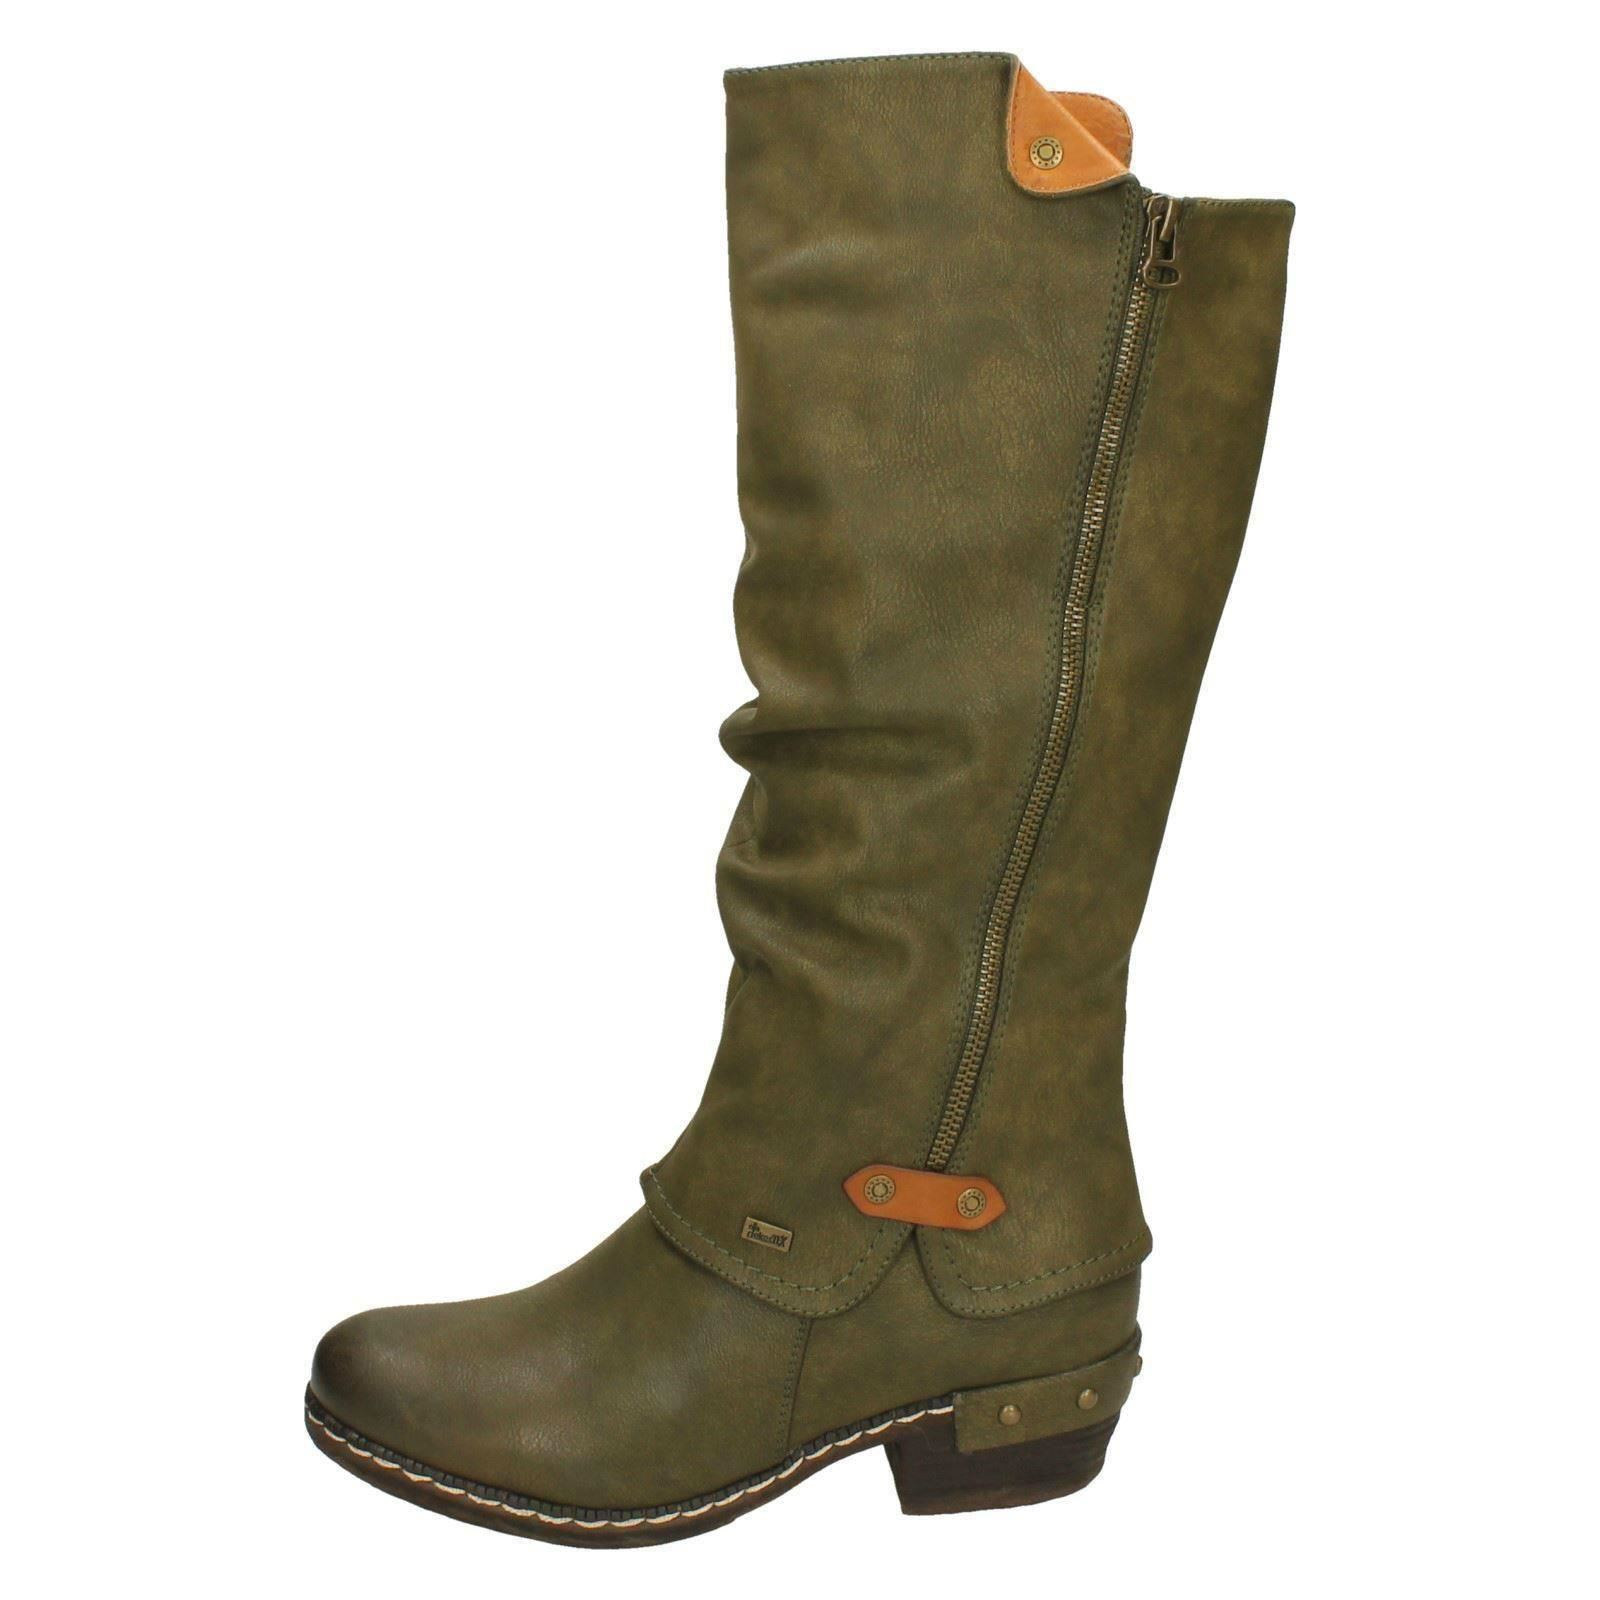 Ladies Rieker Knee High Casual Boots *93655*